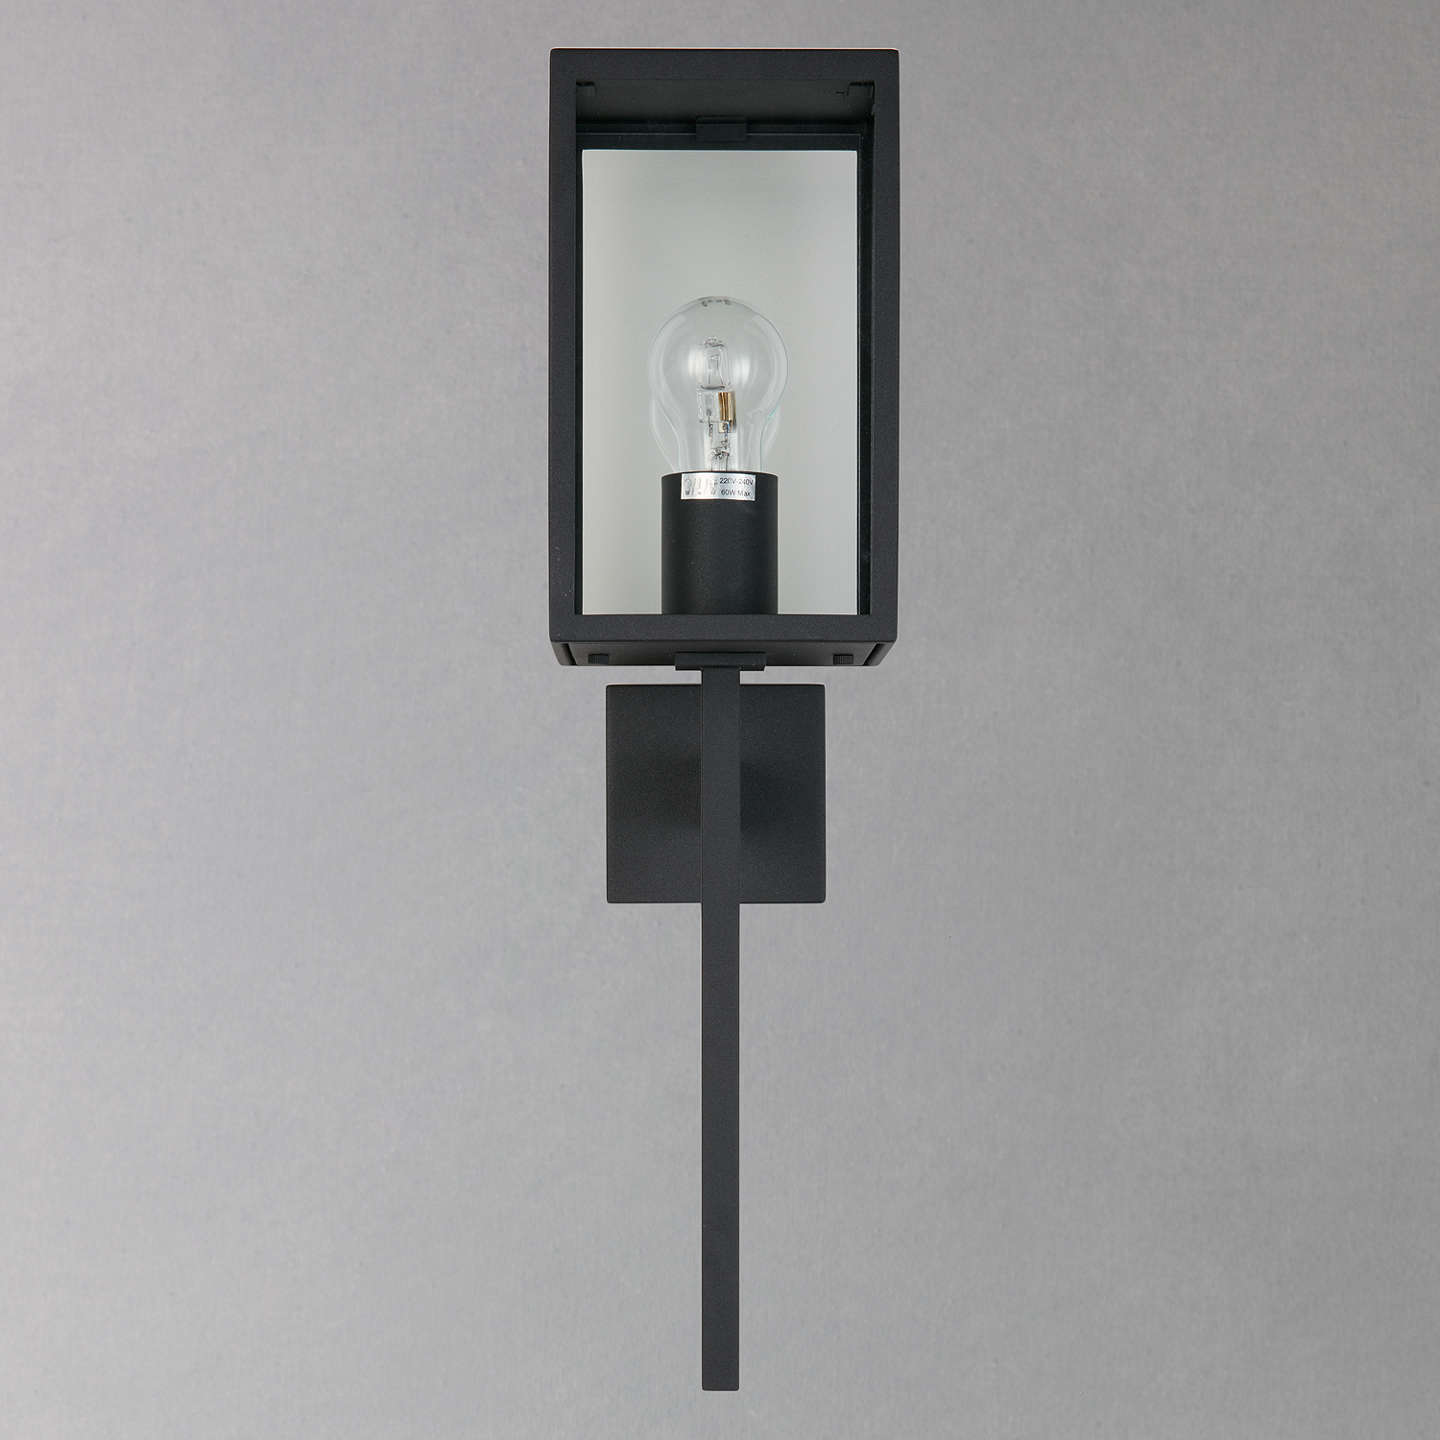 Astro coach lantern 130 outdoor light black at john lewis buyastro coach lantern 130 outdoor light black online at johnlewis aloadofball Image collections